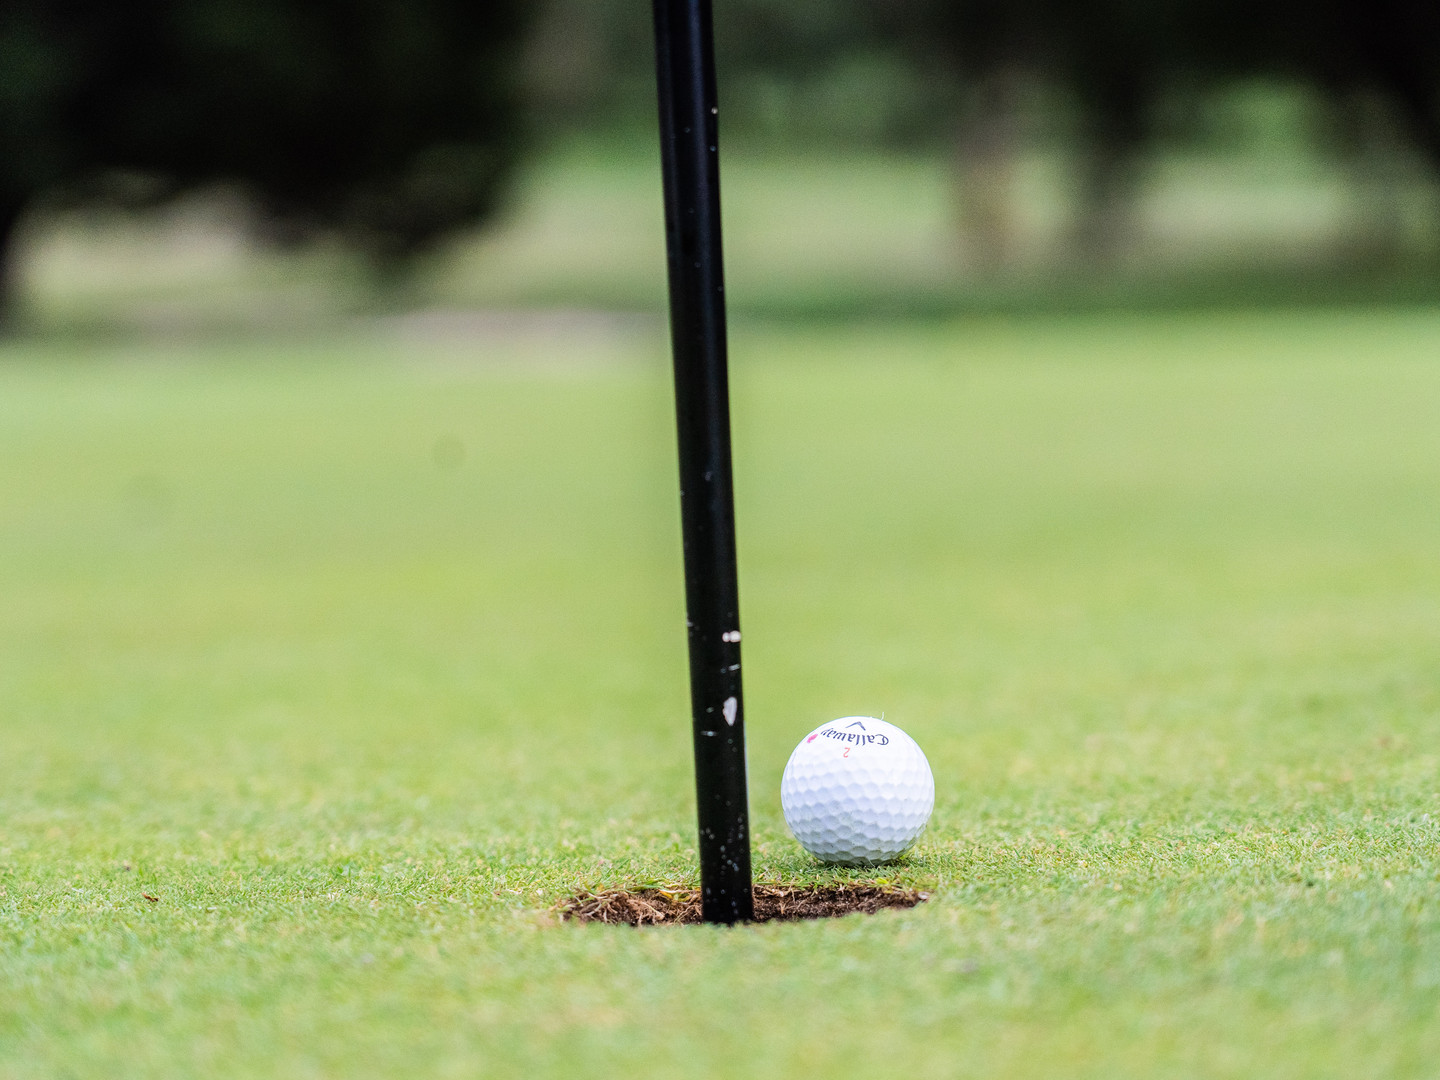 Golf ball going into the hole on the 18 hole PGA championship golf course at Hidden valley resort in Wallan